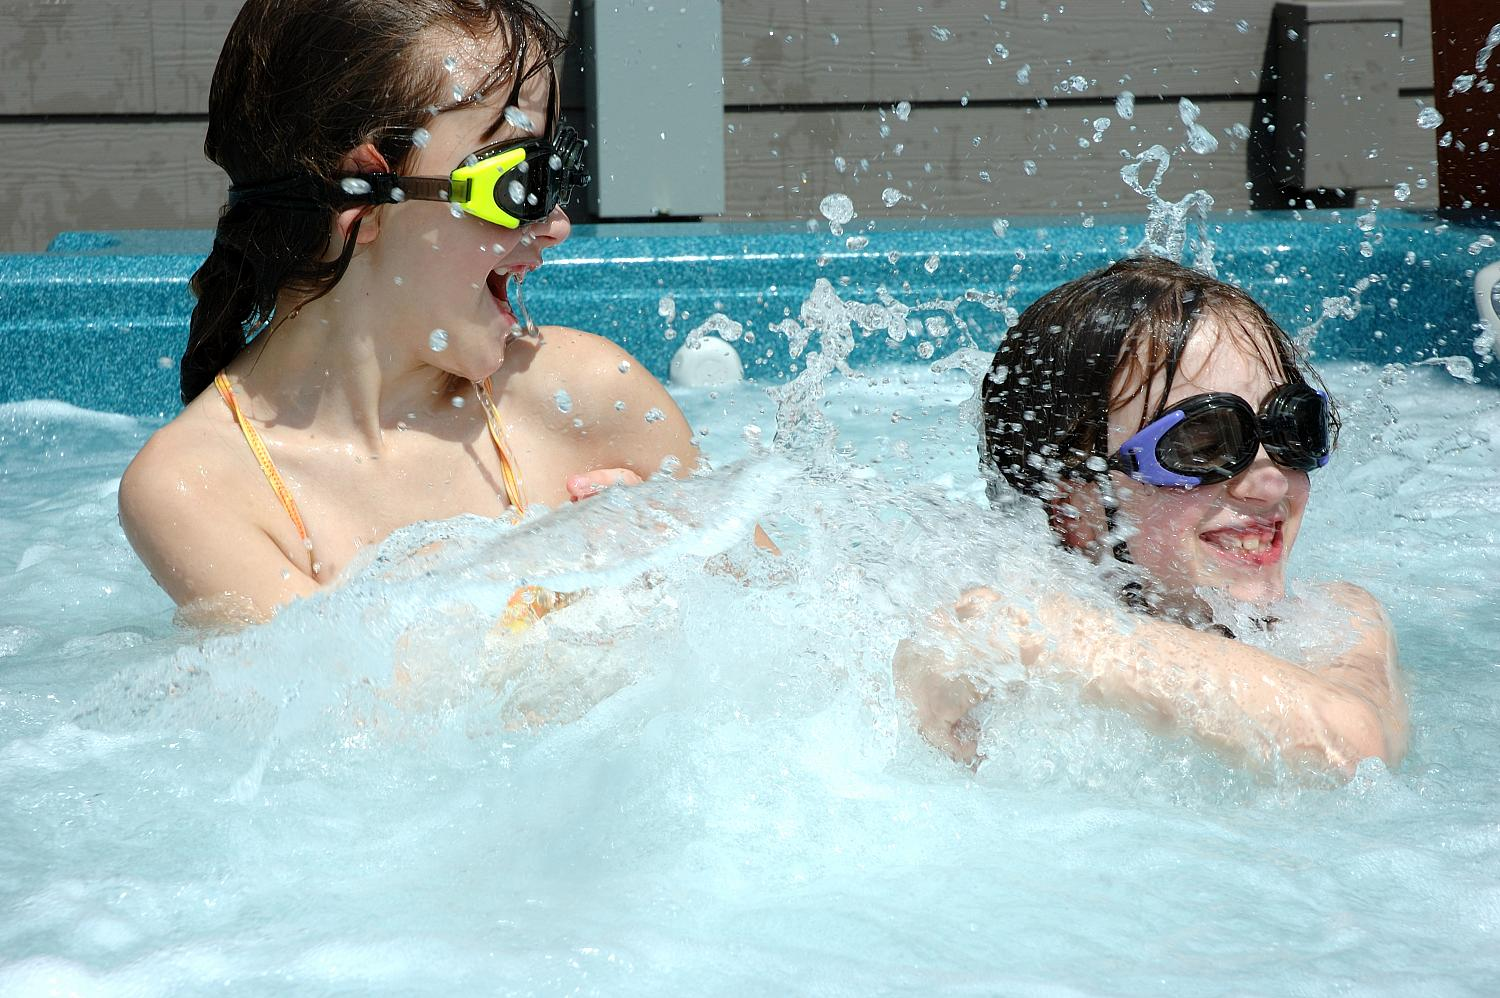 6 hot tub toys you need to try for family fun